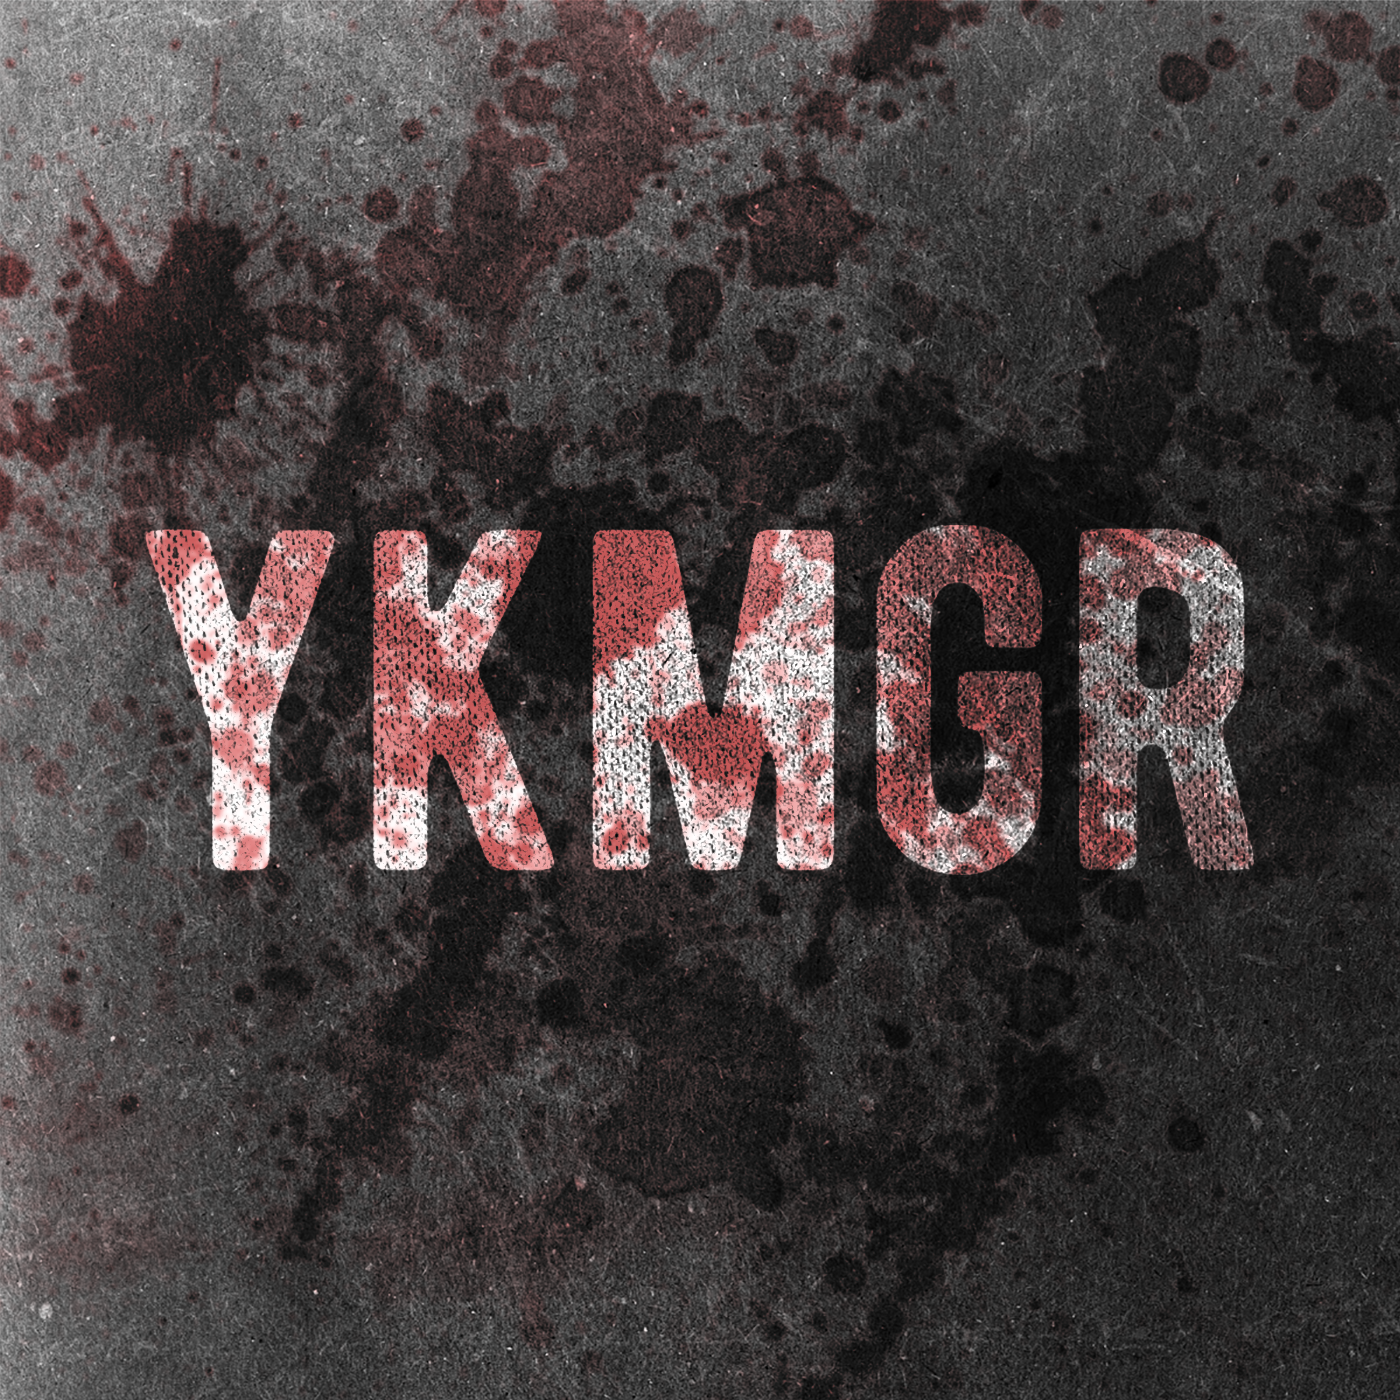 YKMGR blood.PNG